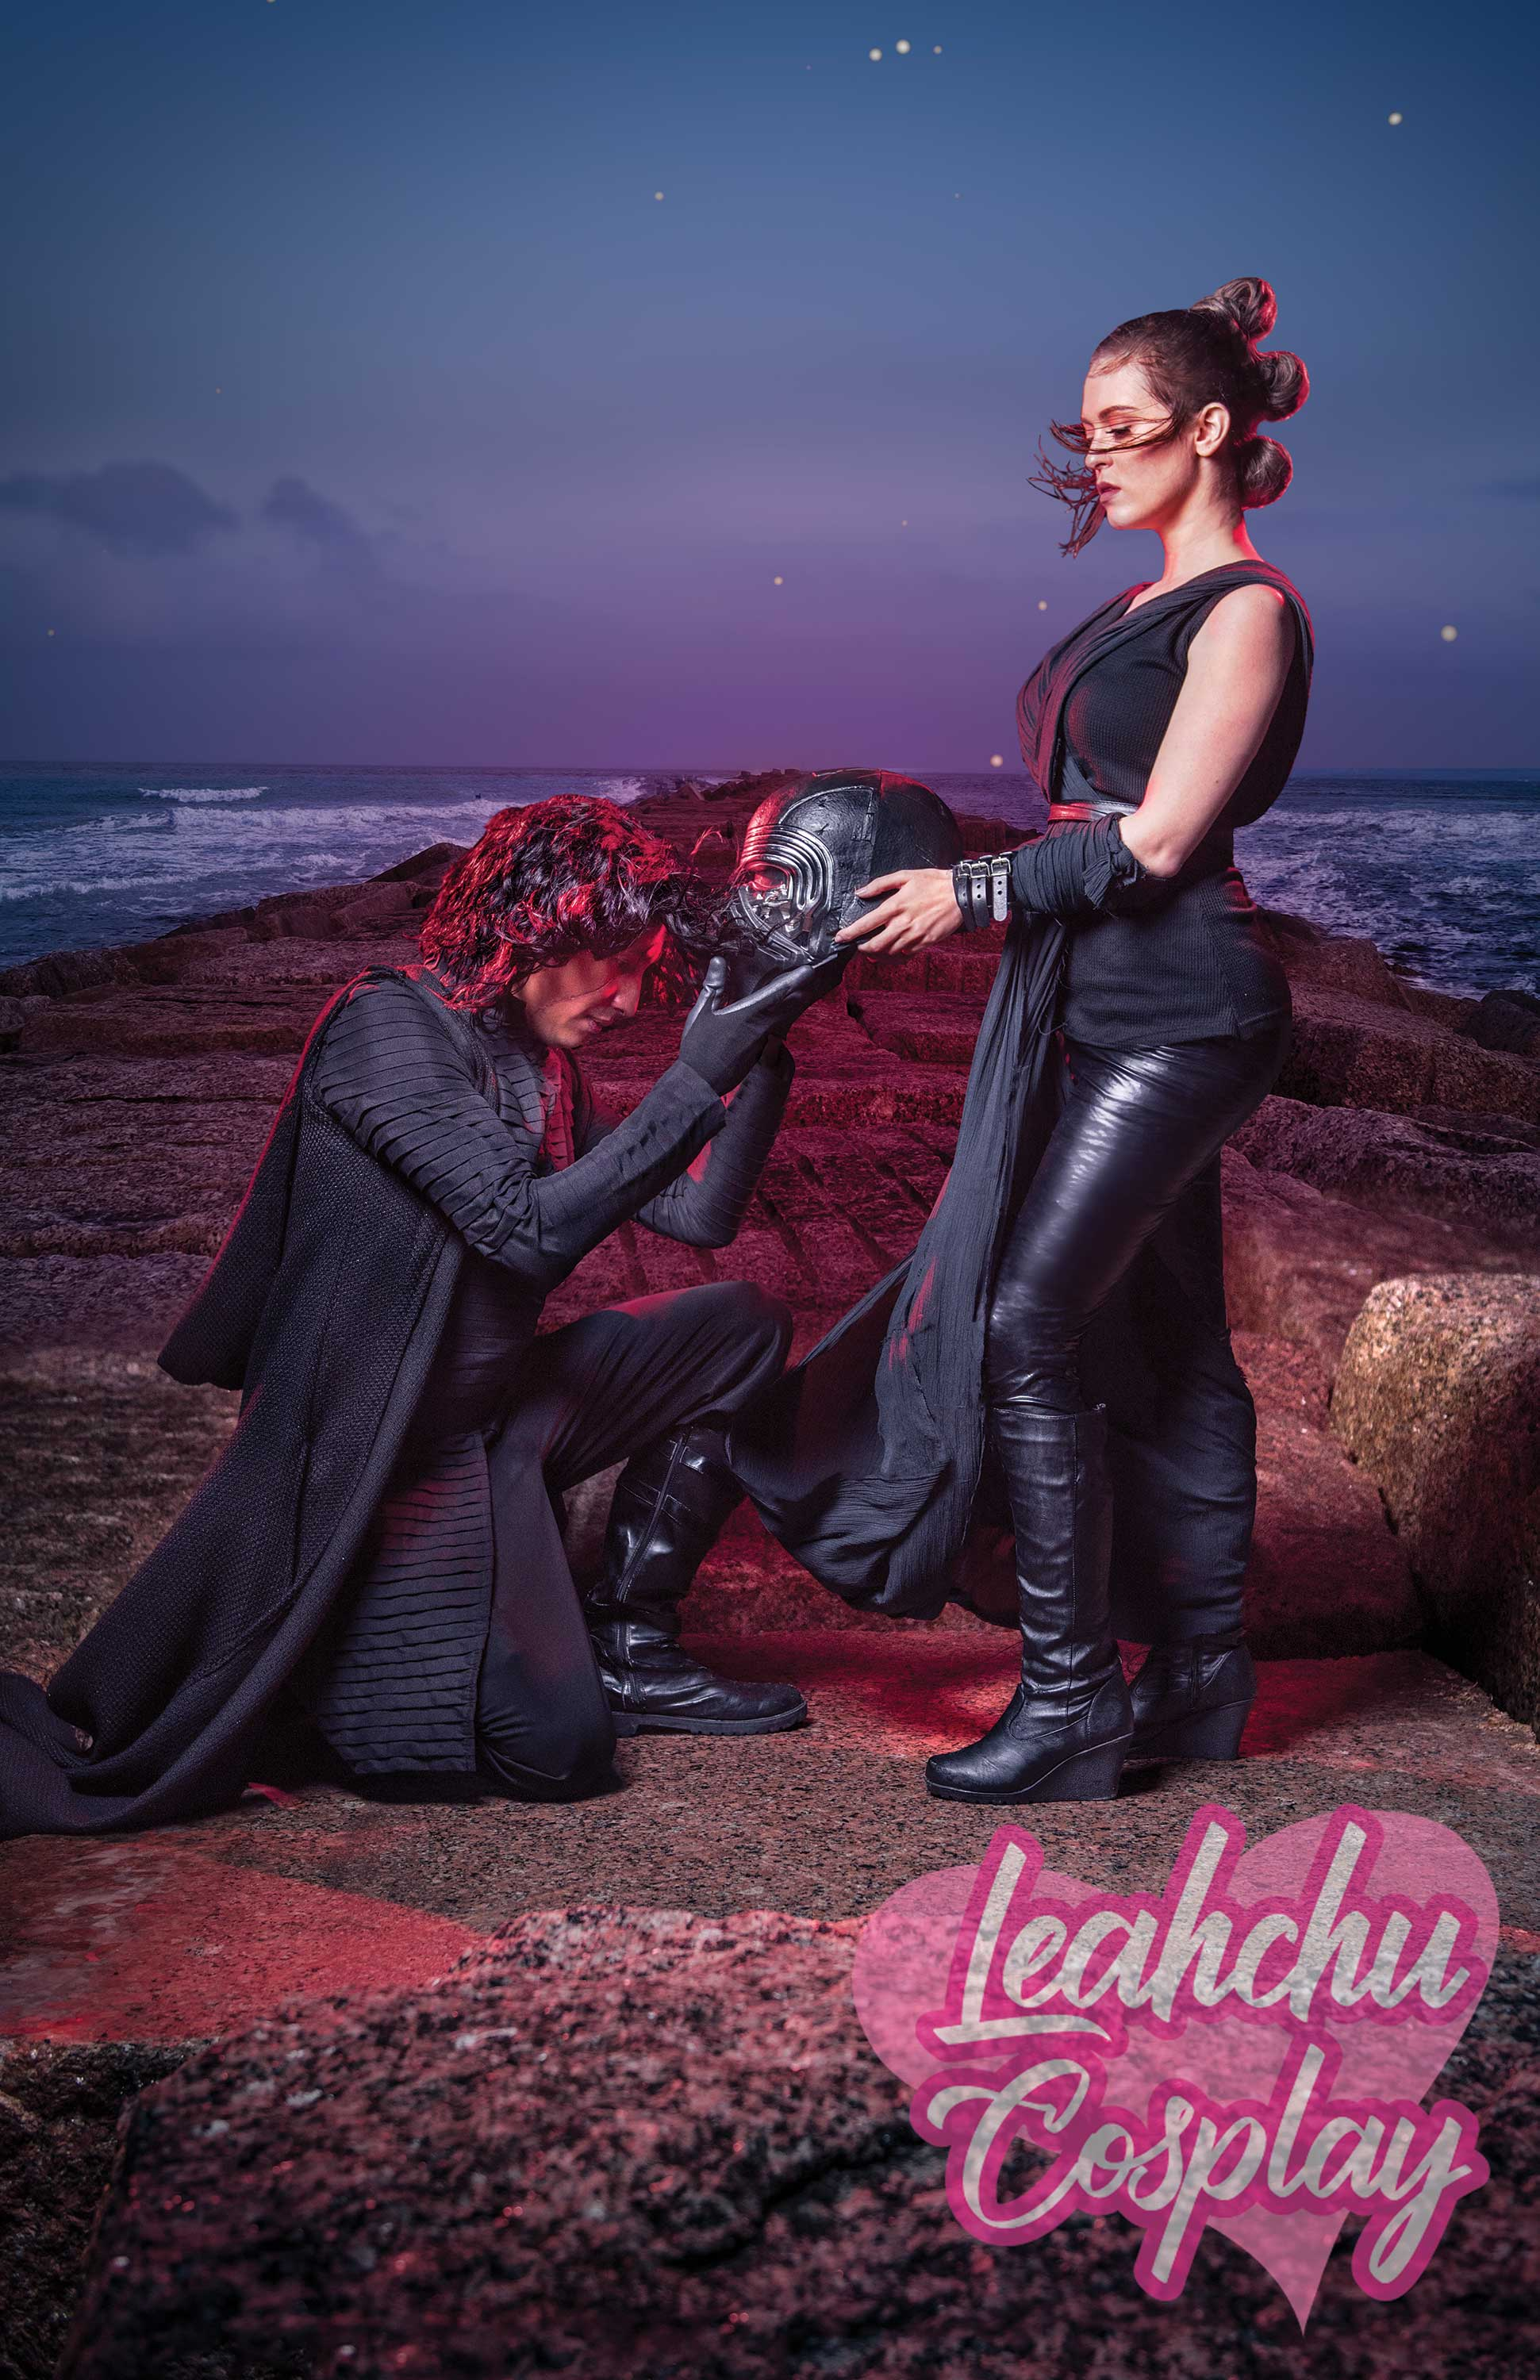 Dark Rey And Kylo Ren Reylo Cosplay Star Wars The Rise Of Skywalker 3 Sold By Leahchu Cosplay On Storenvy